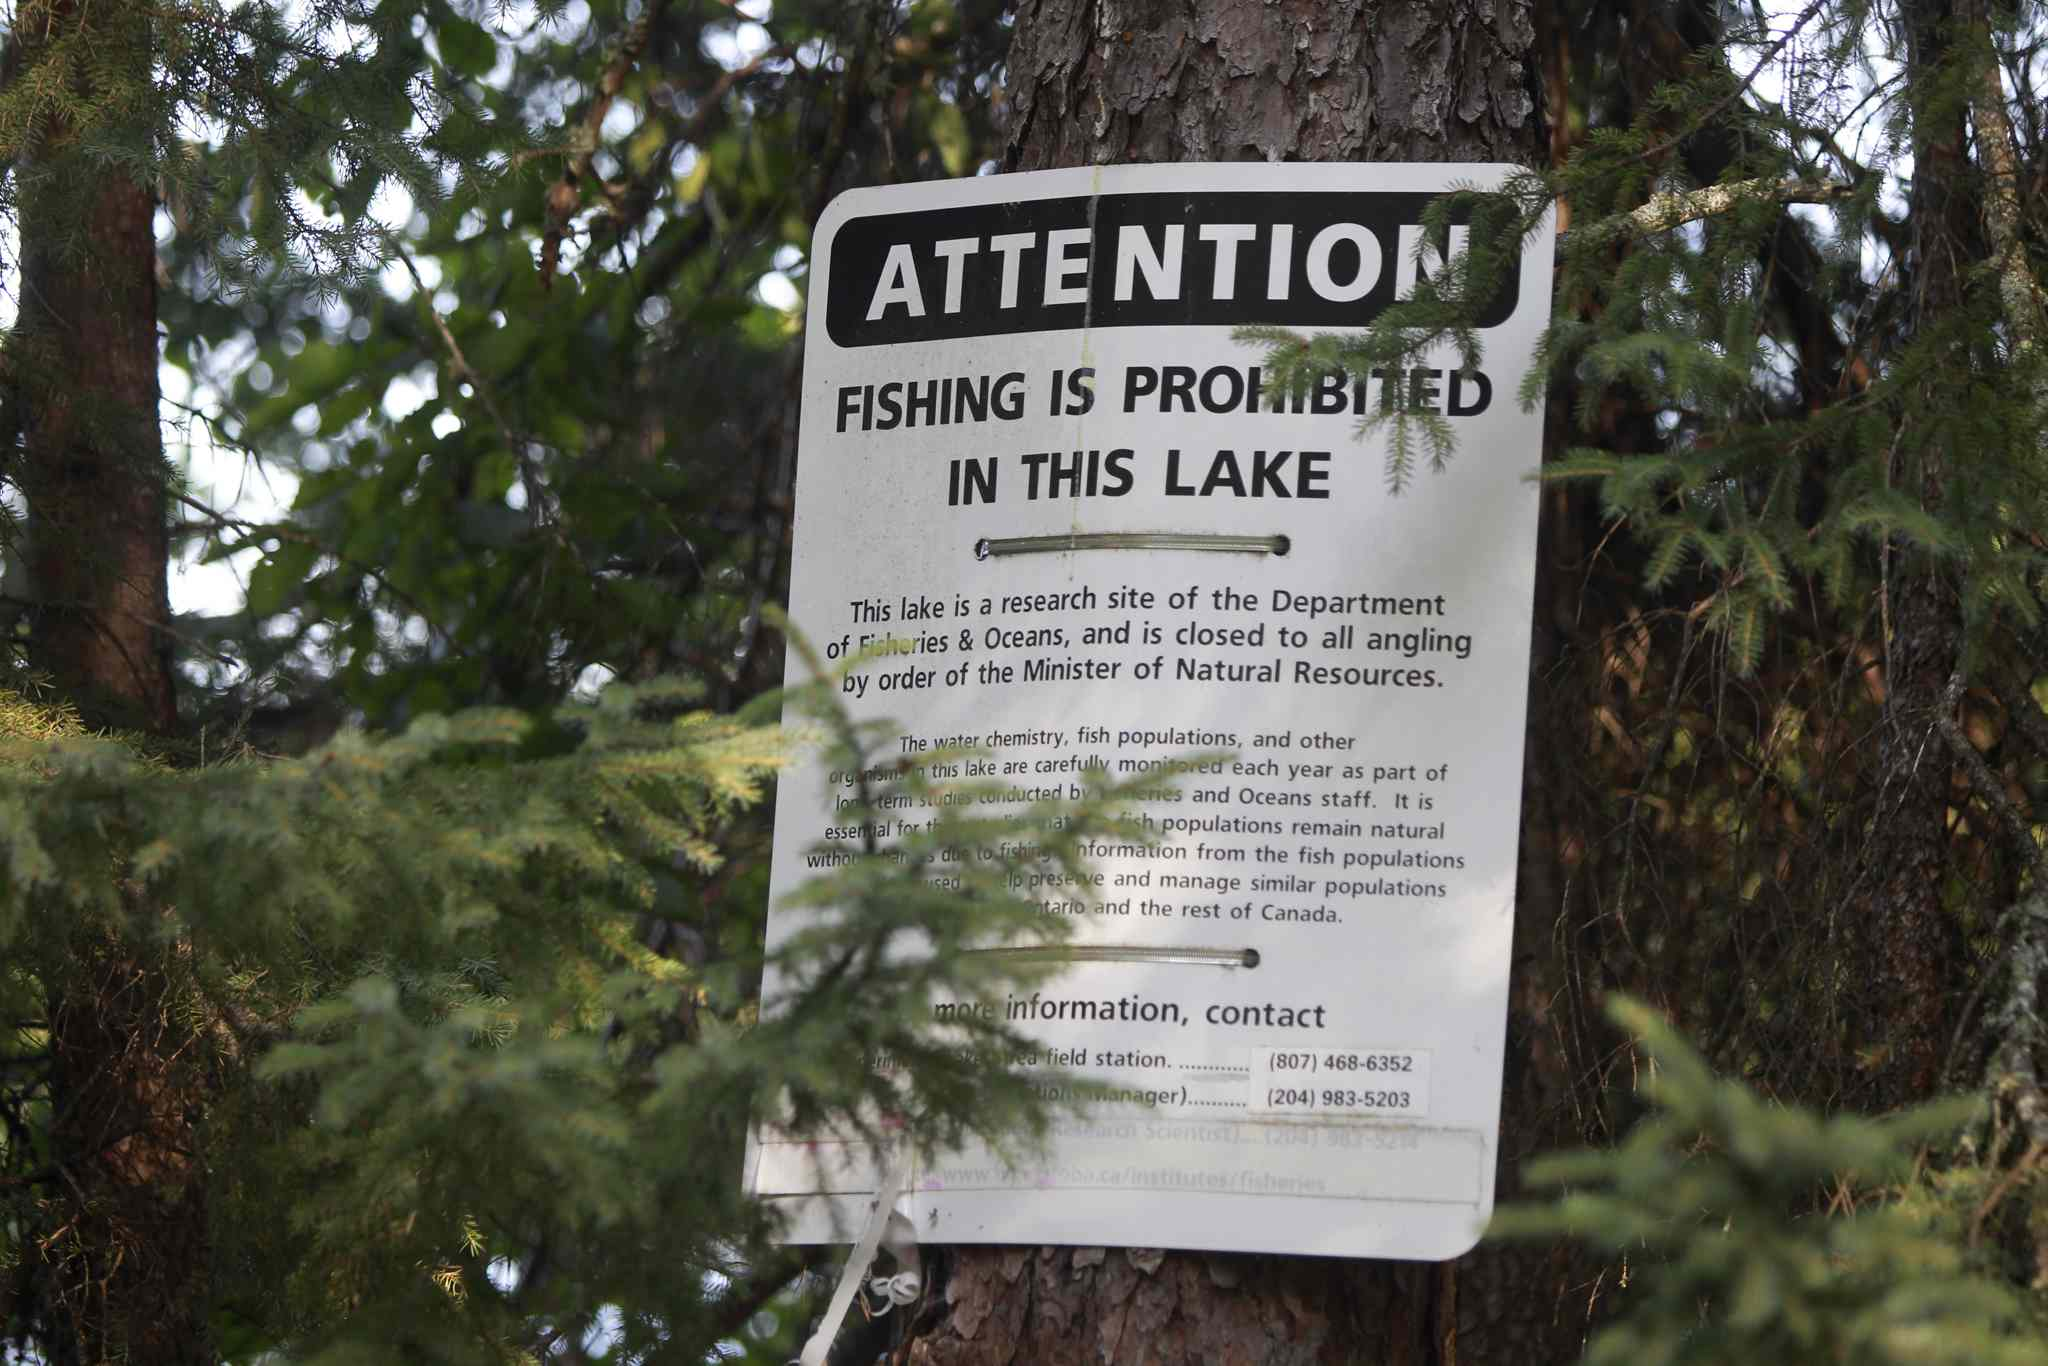 A sign by lake #239 in the Experimental Lakes Area.